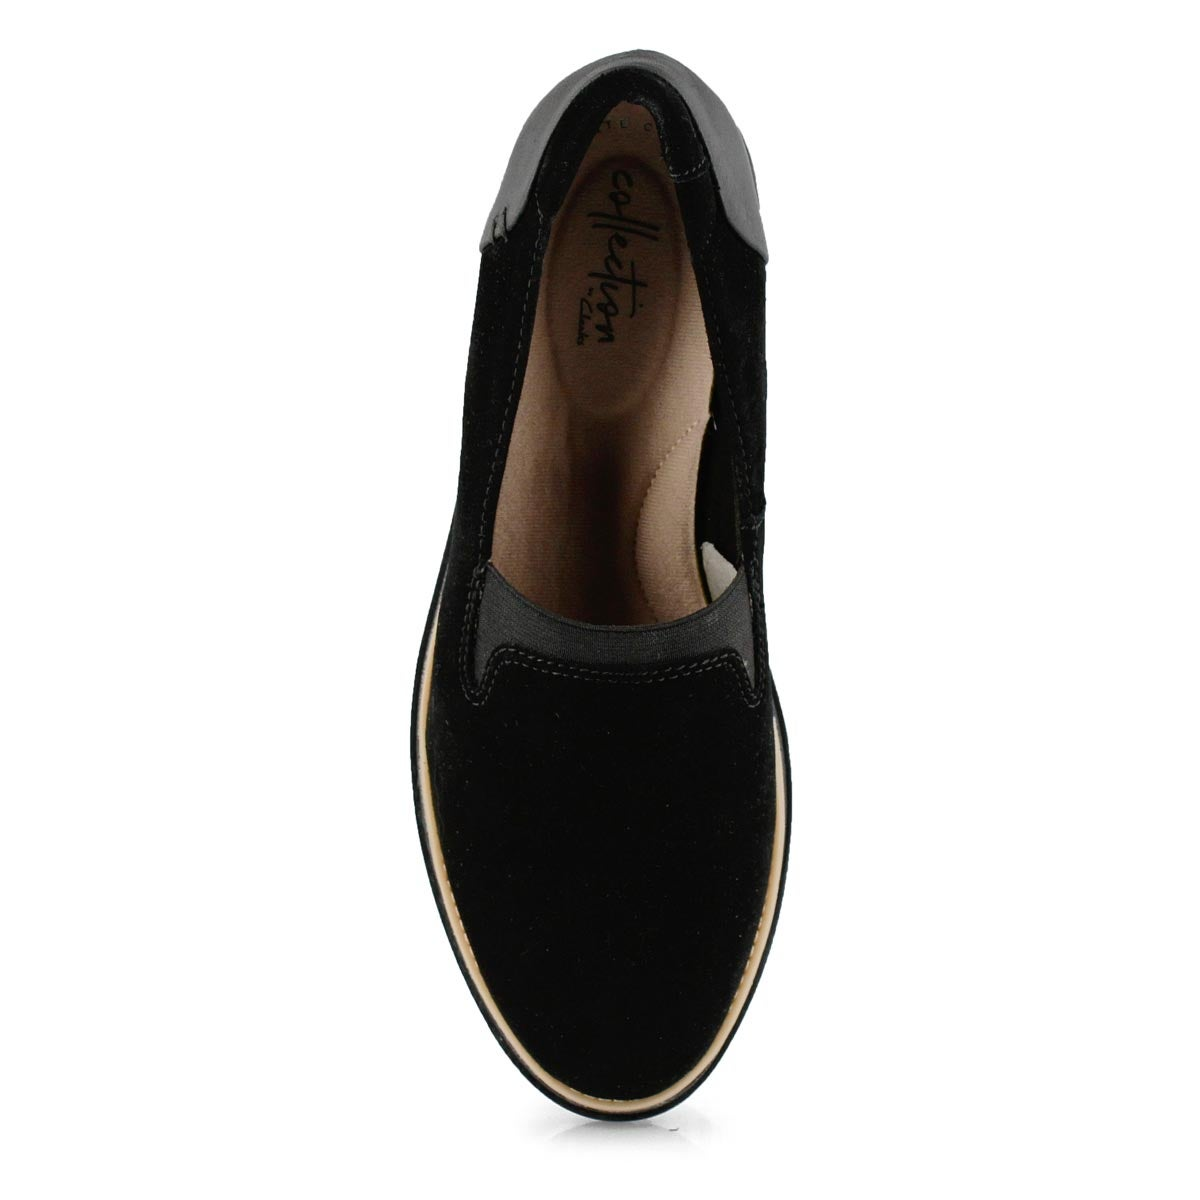 Lds Sharon Dolly black sde casual loafer